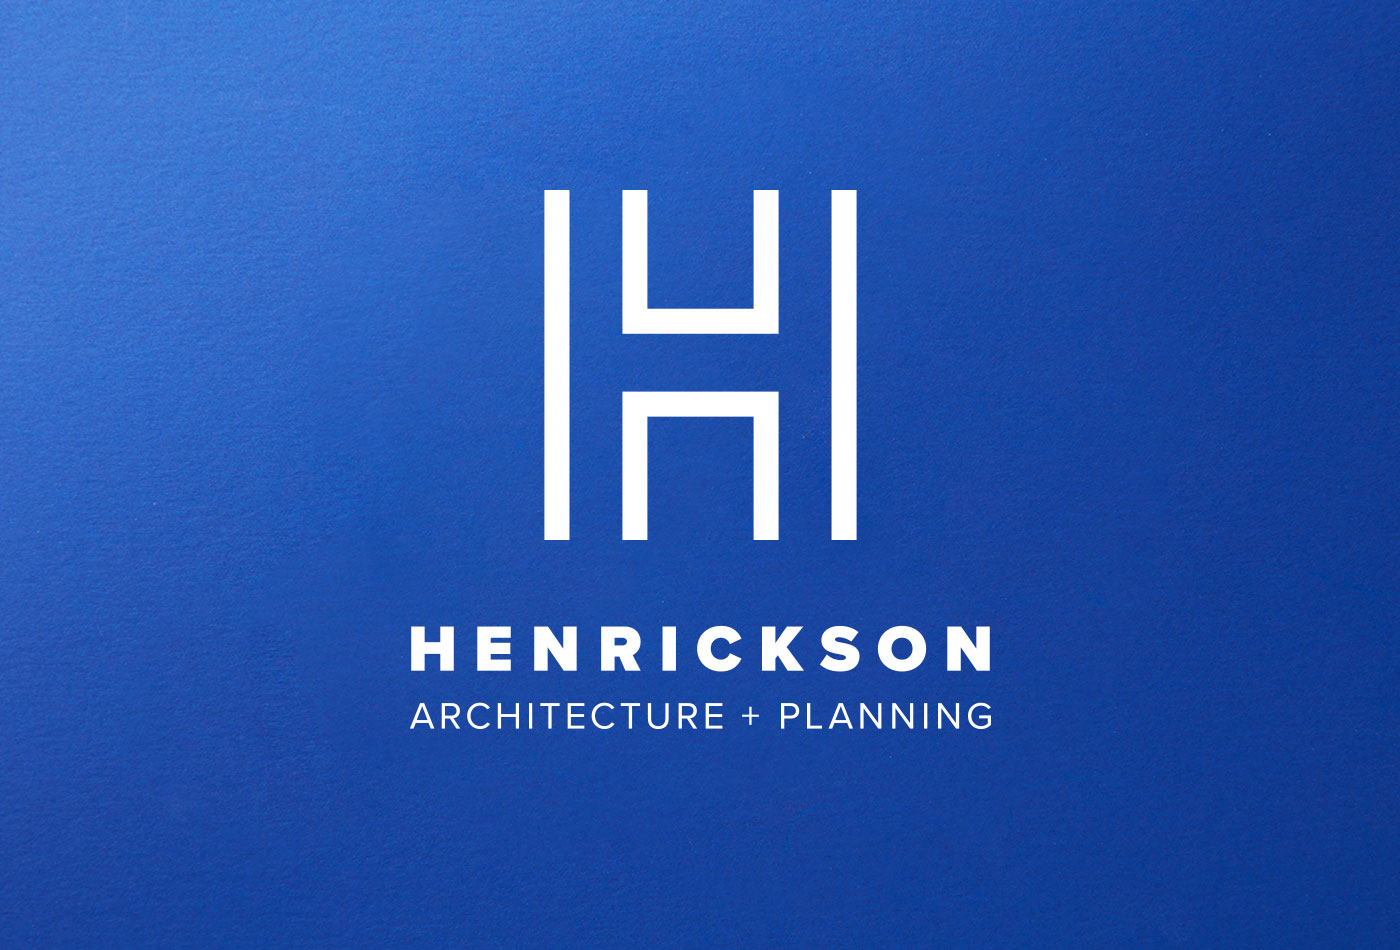 Henrickson Architecture logo on blue background